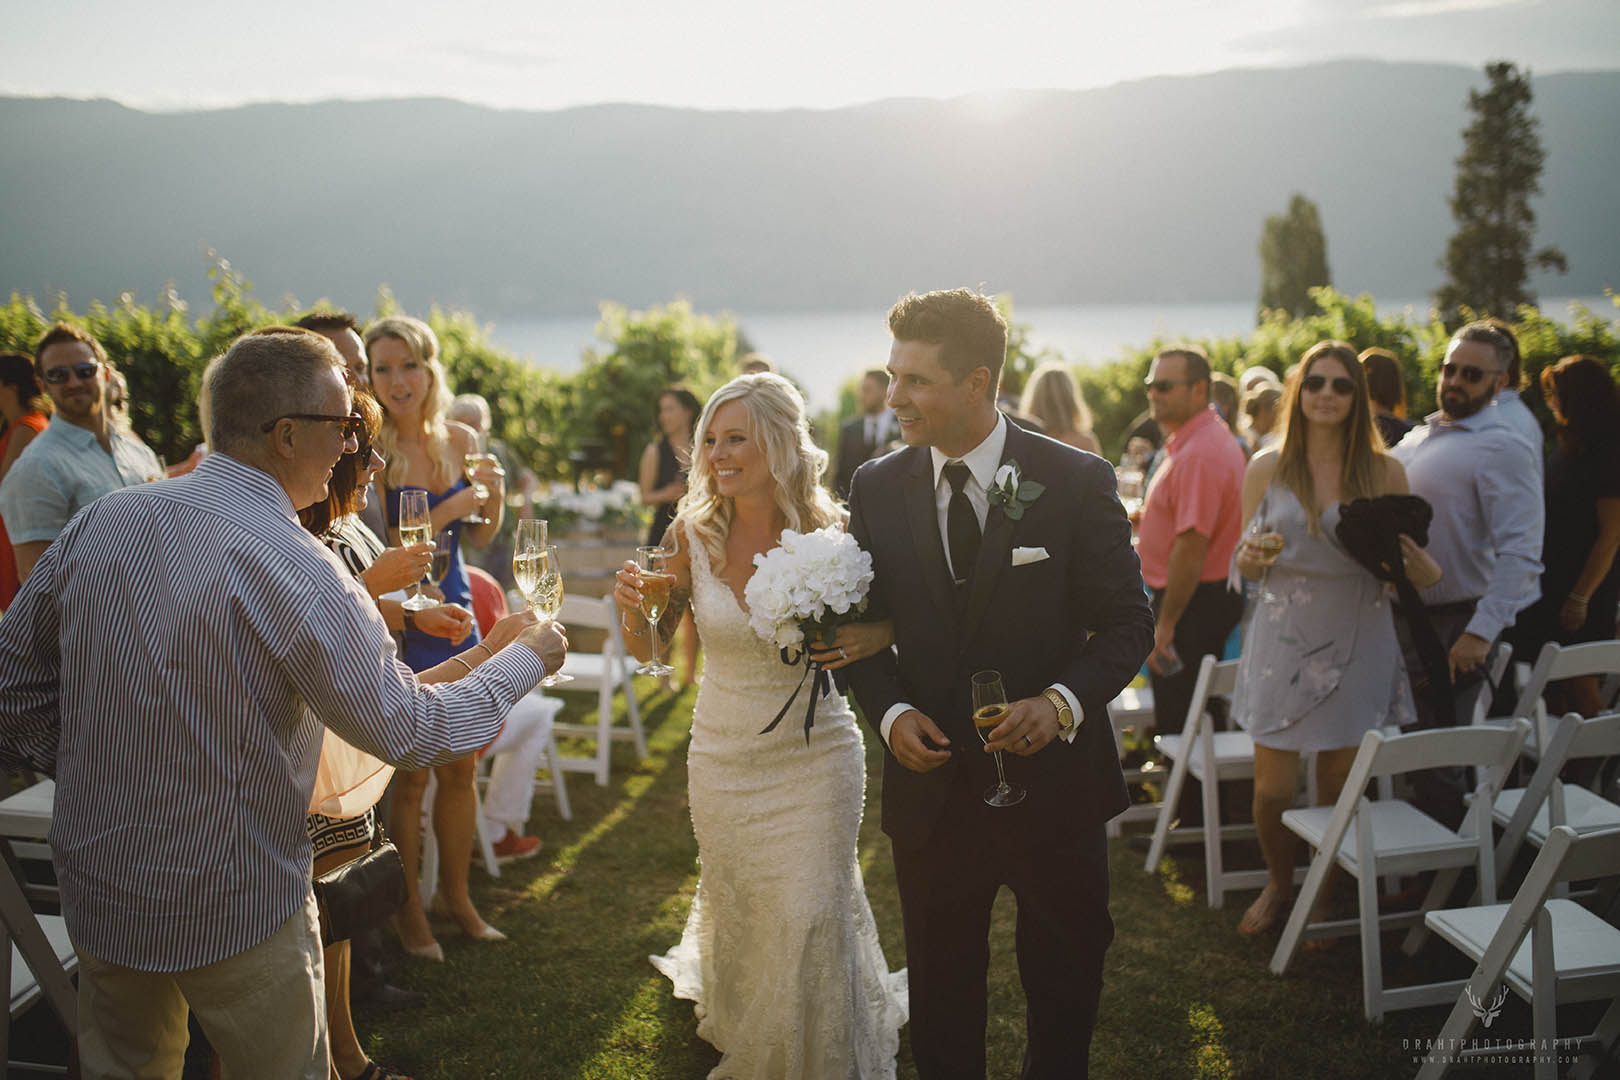 Weddings in the vineyard.